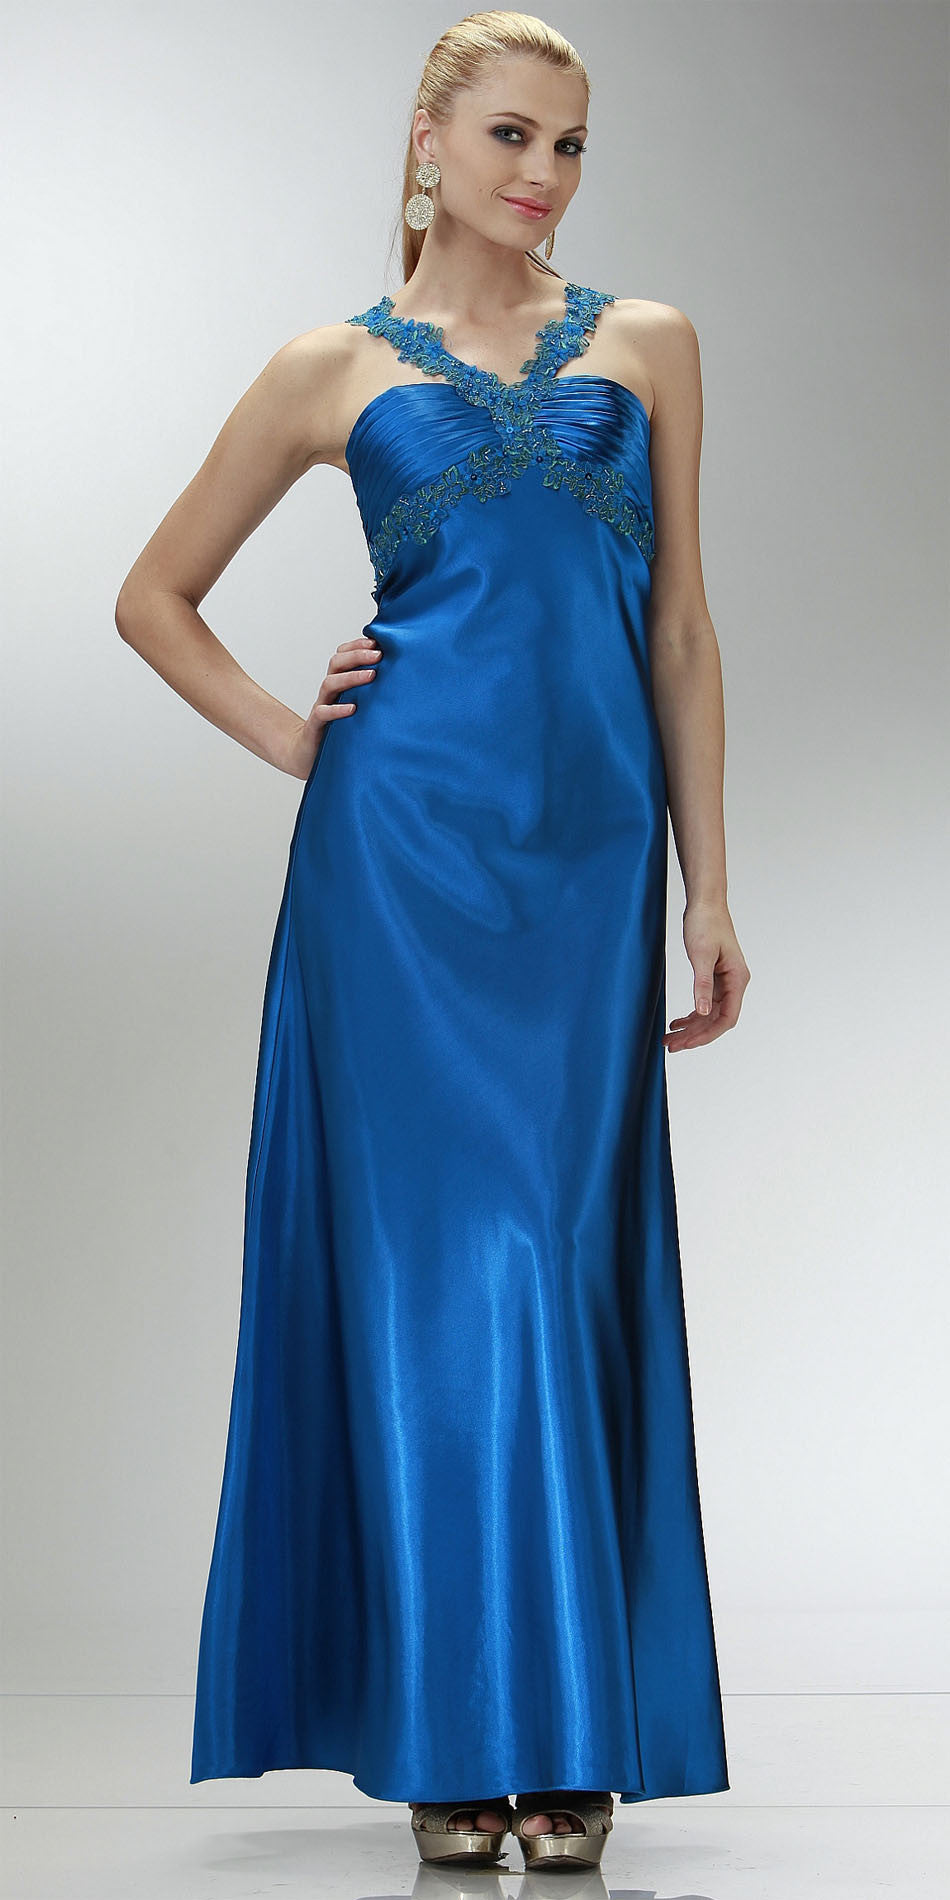 ON SPECIAL LIMITED STOCK - Cheap Sapphire Blue Prom Dress Full Length Satin Gown Applique Cross Straps